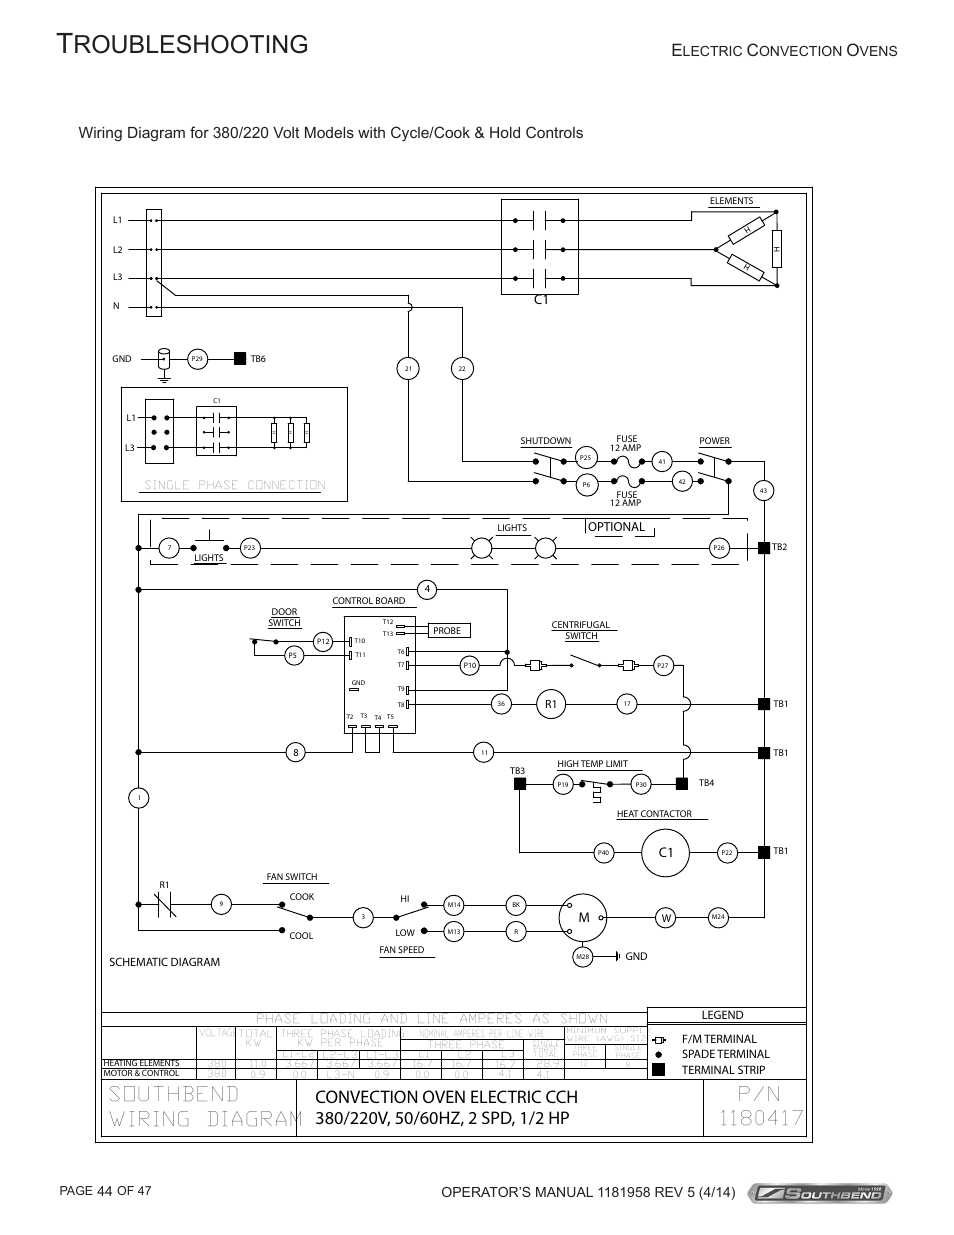 medium resolution of roubleshooting southbend wiring diagram convection oven electric cch southbend sl series user manual page 44 47